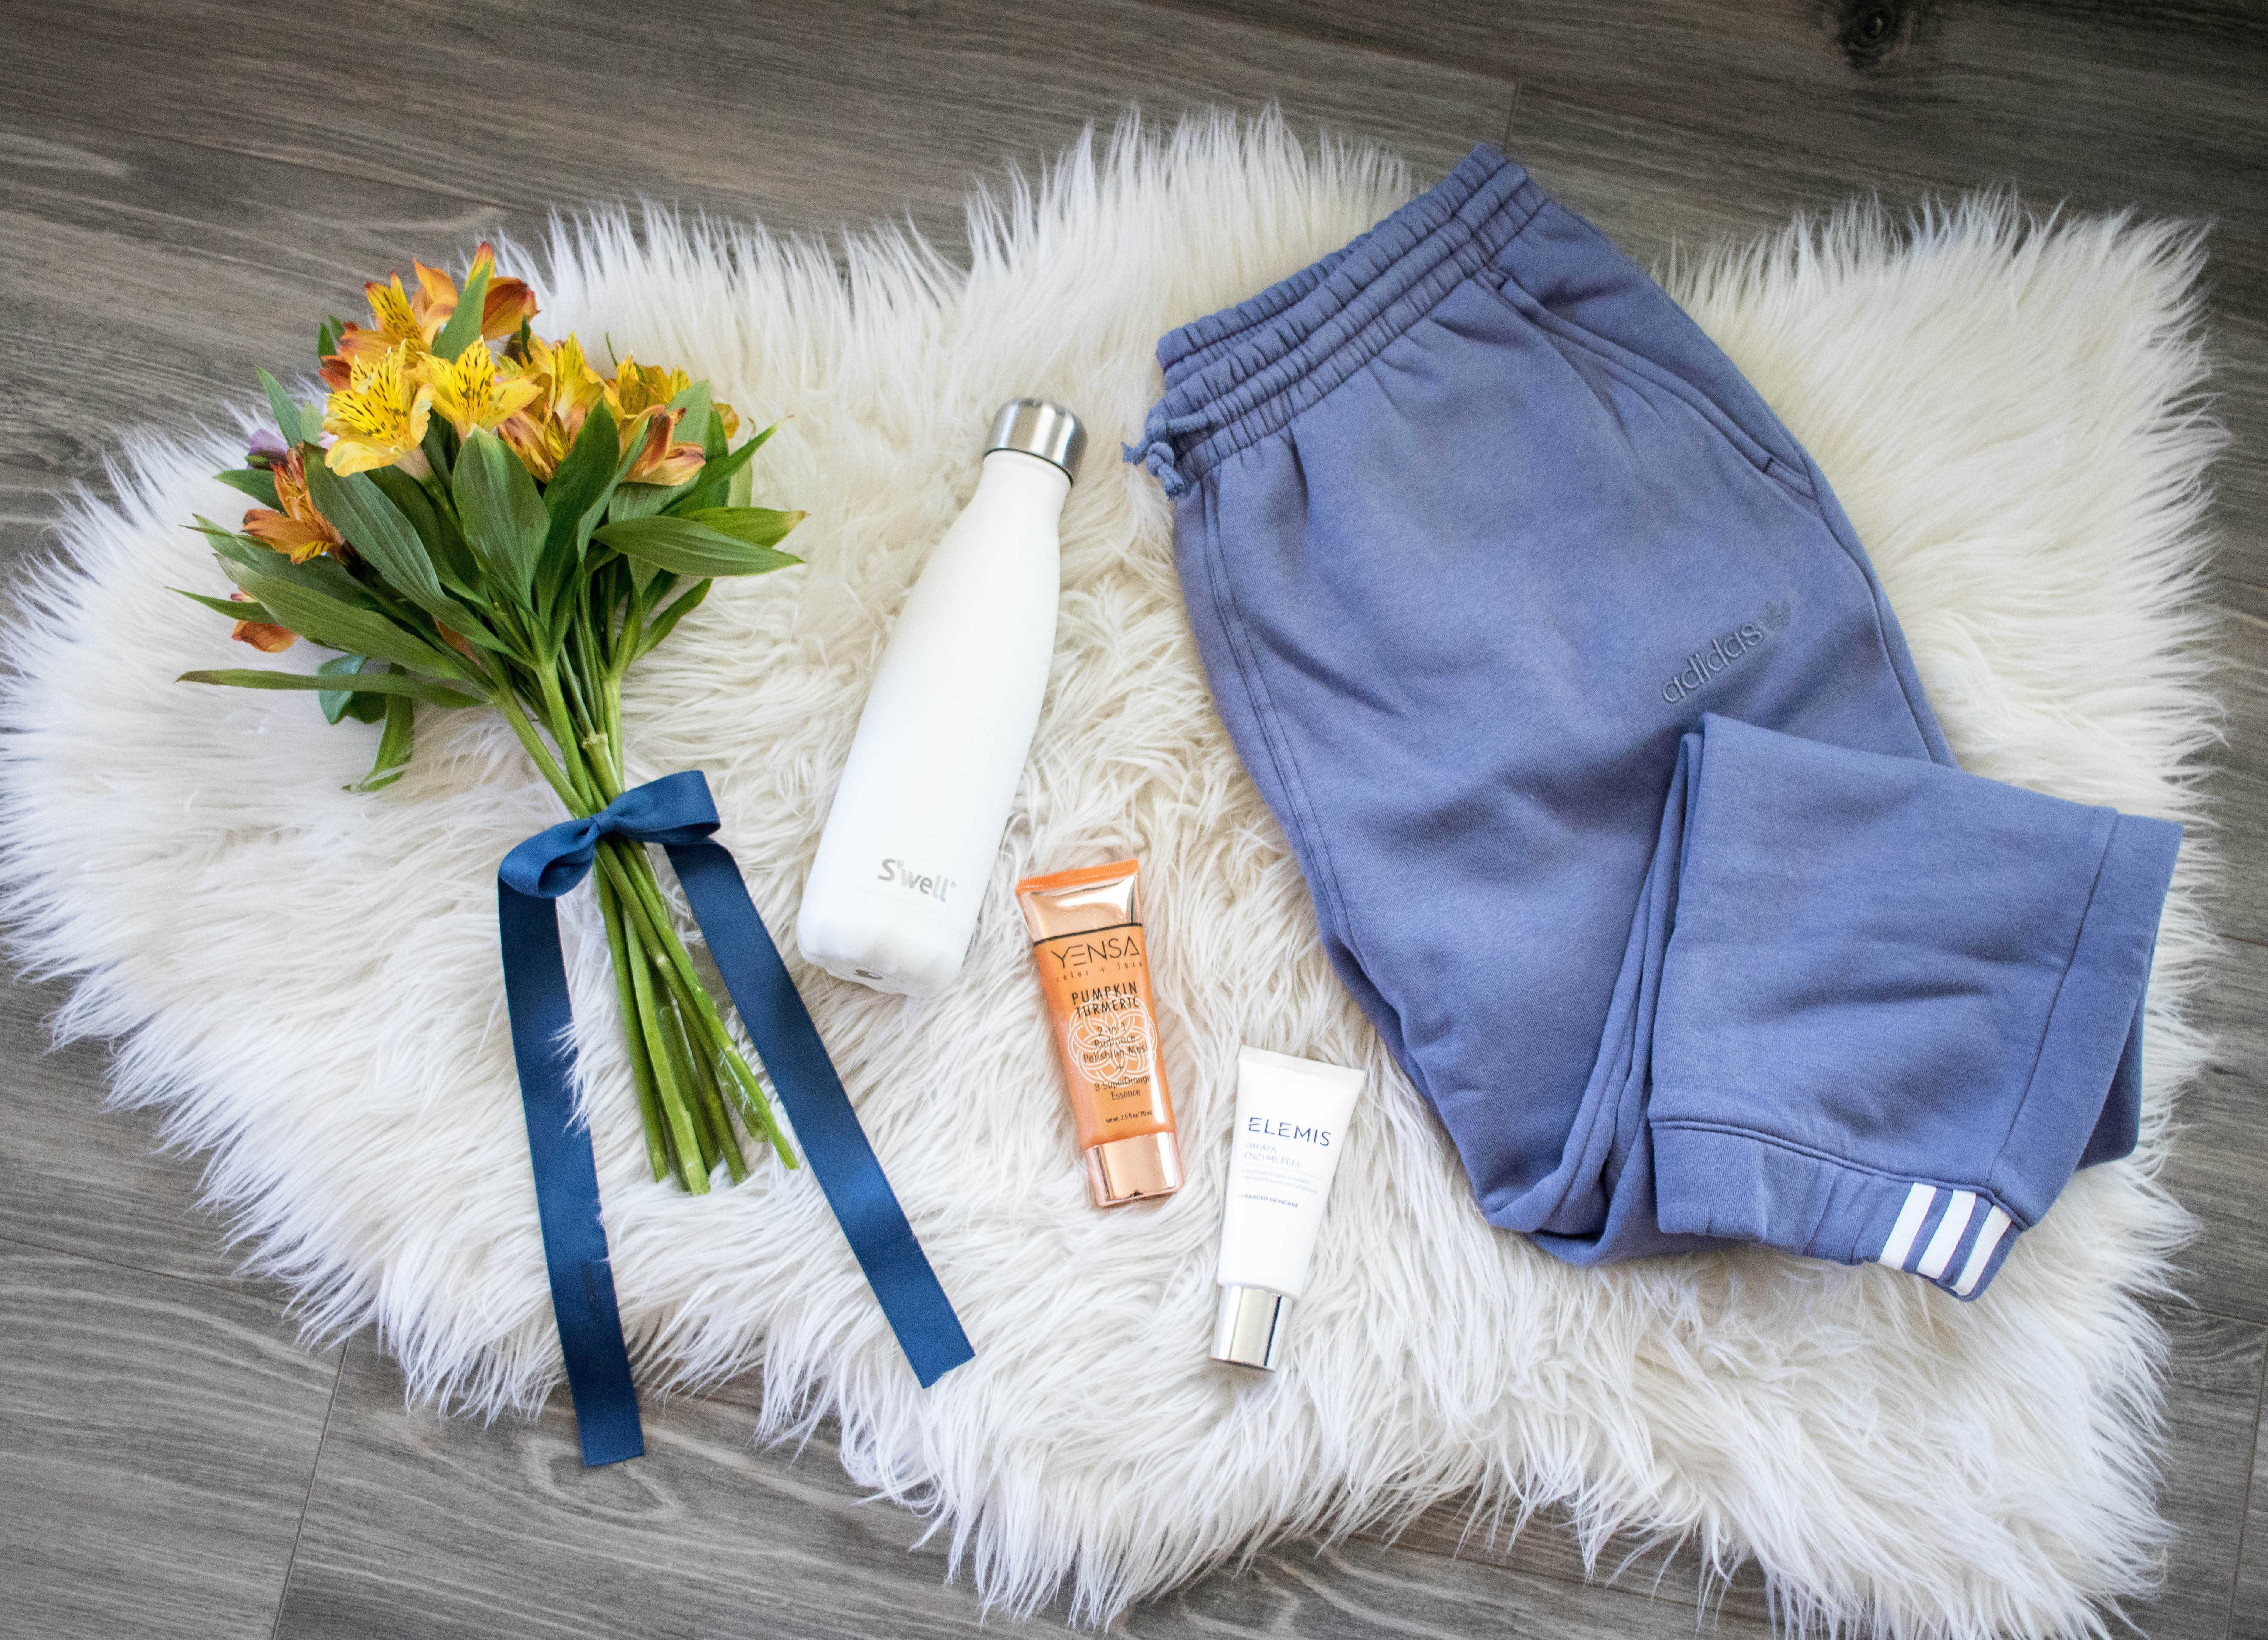 Mother's Day gift guide under $100 Adidas #mothersday #giftguide #adidas